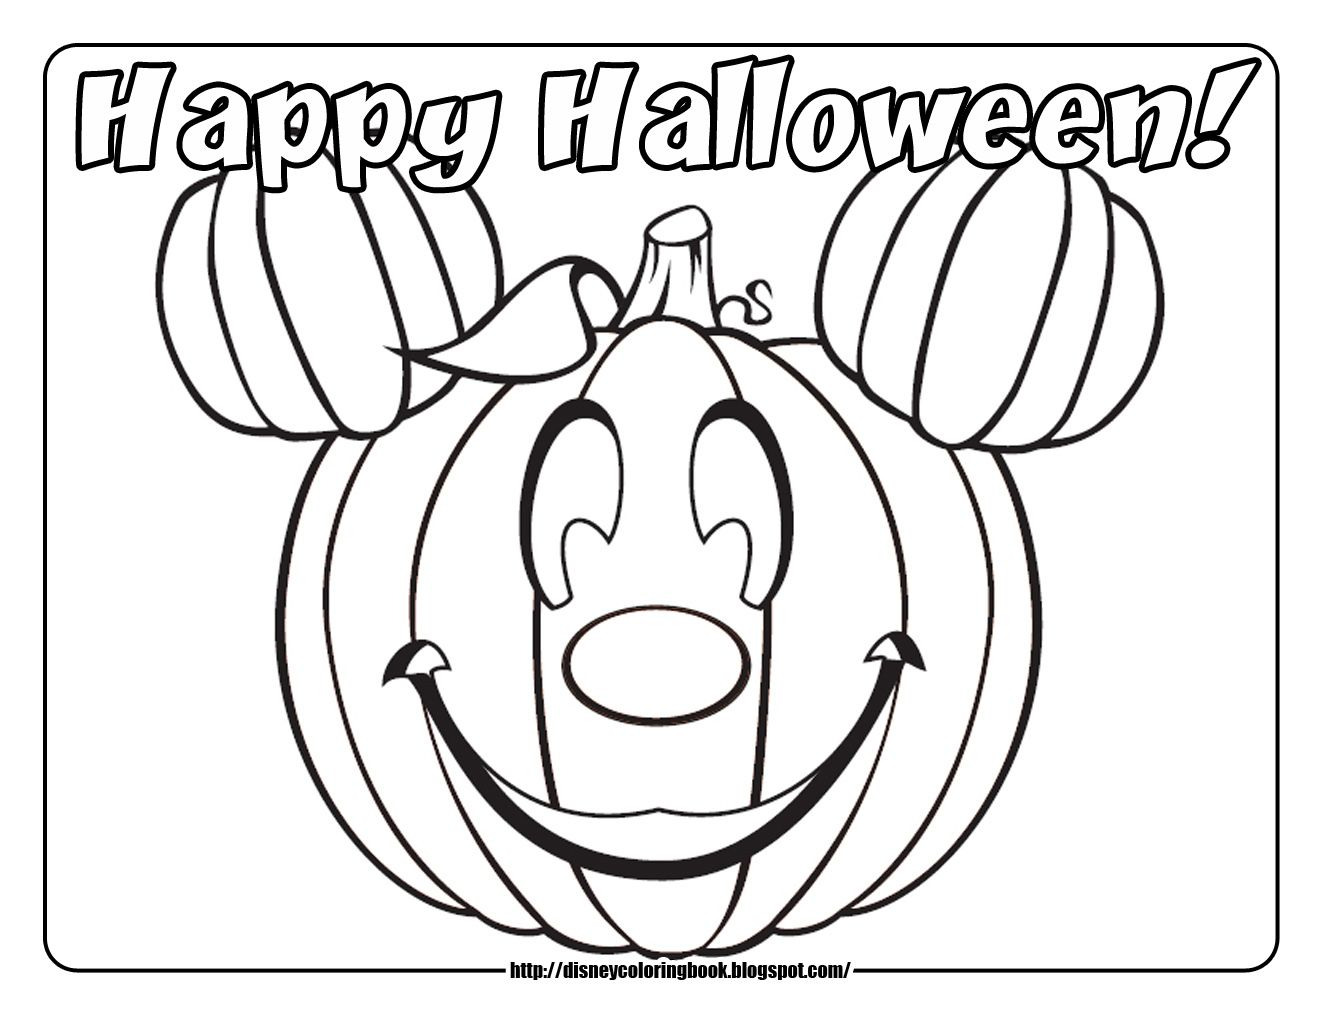 Mickey And Minnie Happy Halloween Coloring Pages Hd Halloween Coloring Pages Printable Free Halloween Coloring Pages Pumpkin Coloring Pages